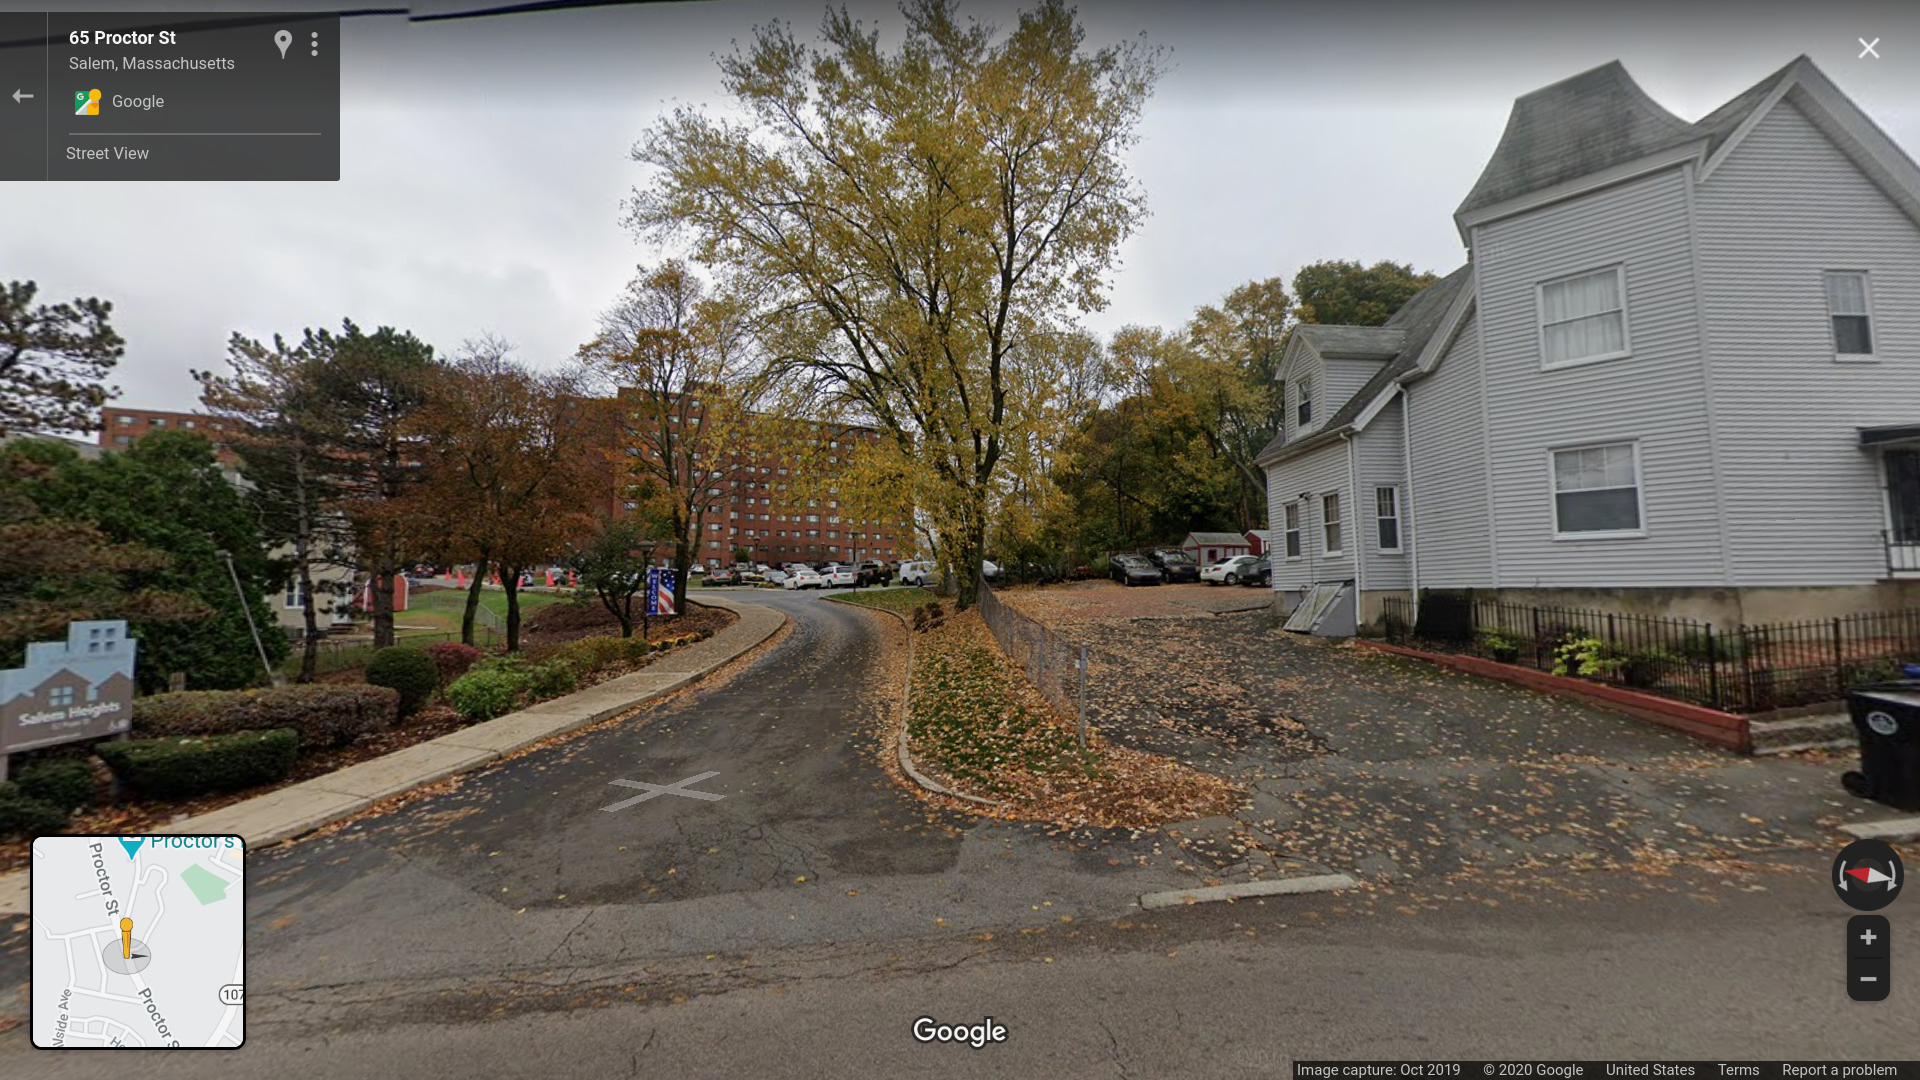 A google street view of the end of the driveway, looking up towards a brick building.